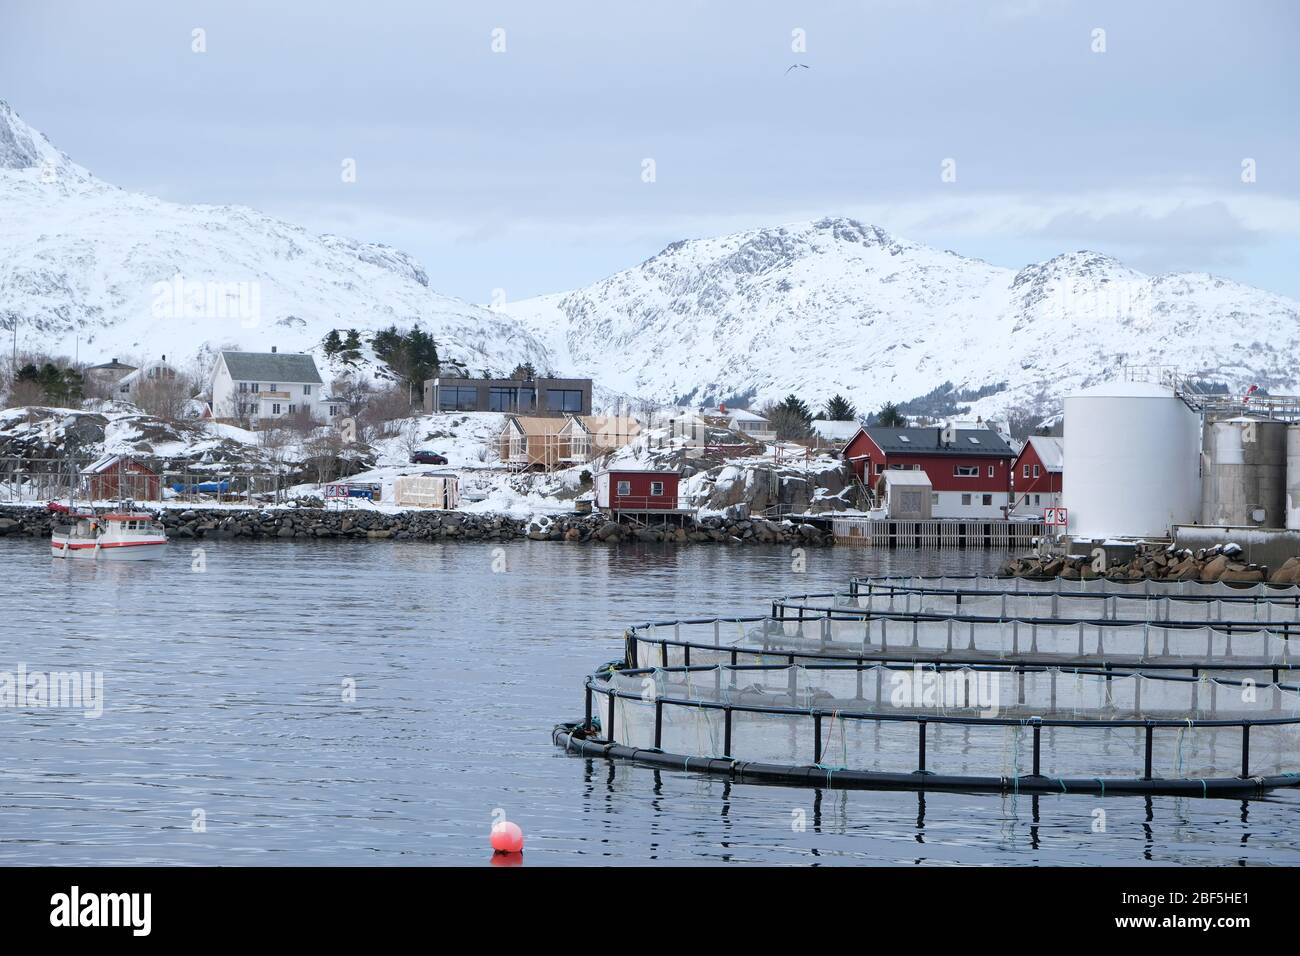 Fish farm belongs to cod liver oil factory.Quiet fishing village Ballstad, located in northern Norway.Fishing season traditionally starts every winter Stock Photo